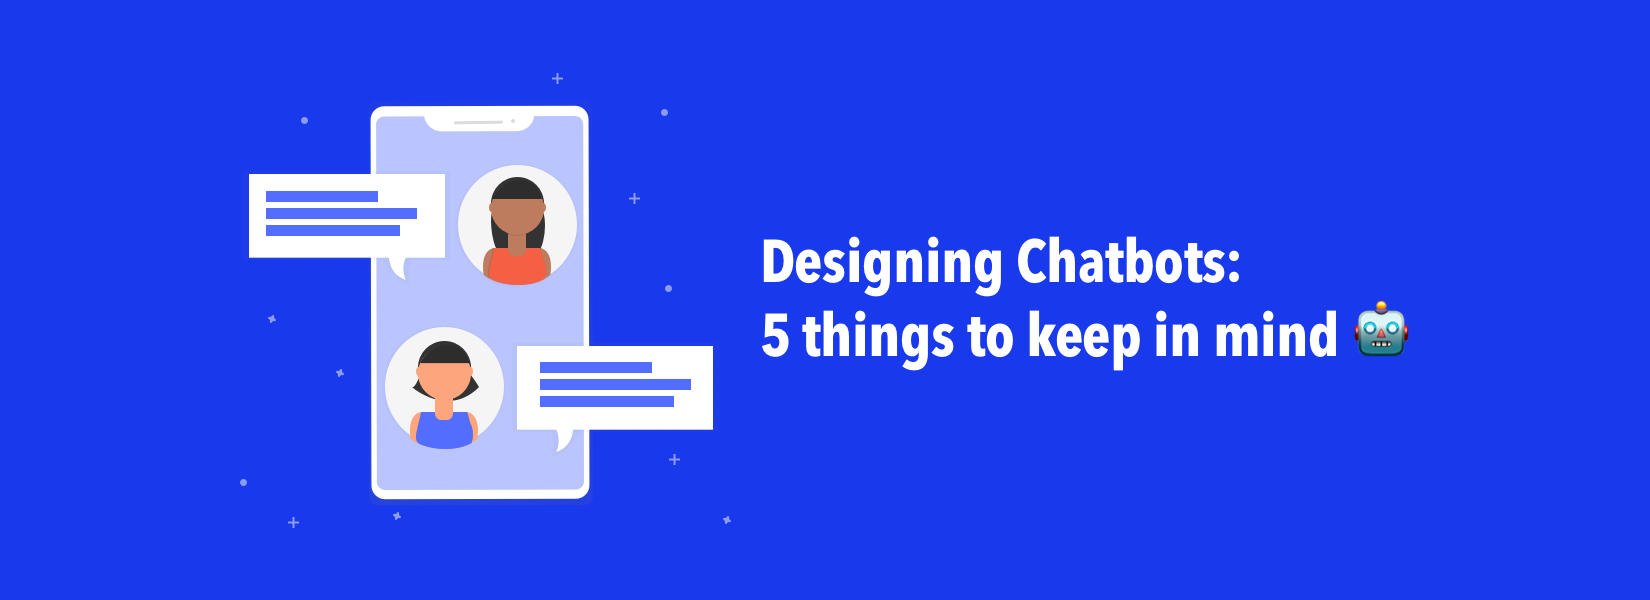 Designing Chatbots: 5 things to keep in mind